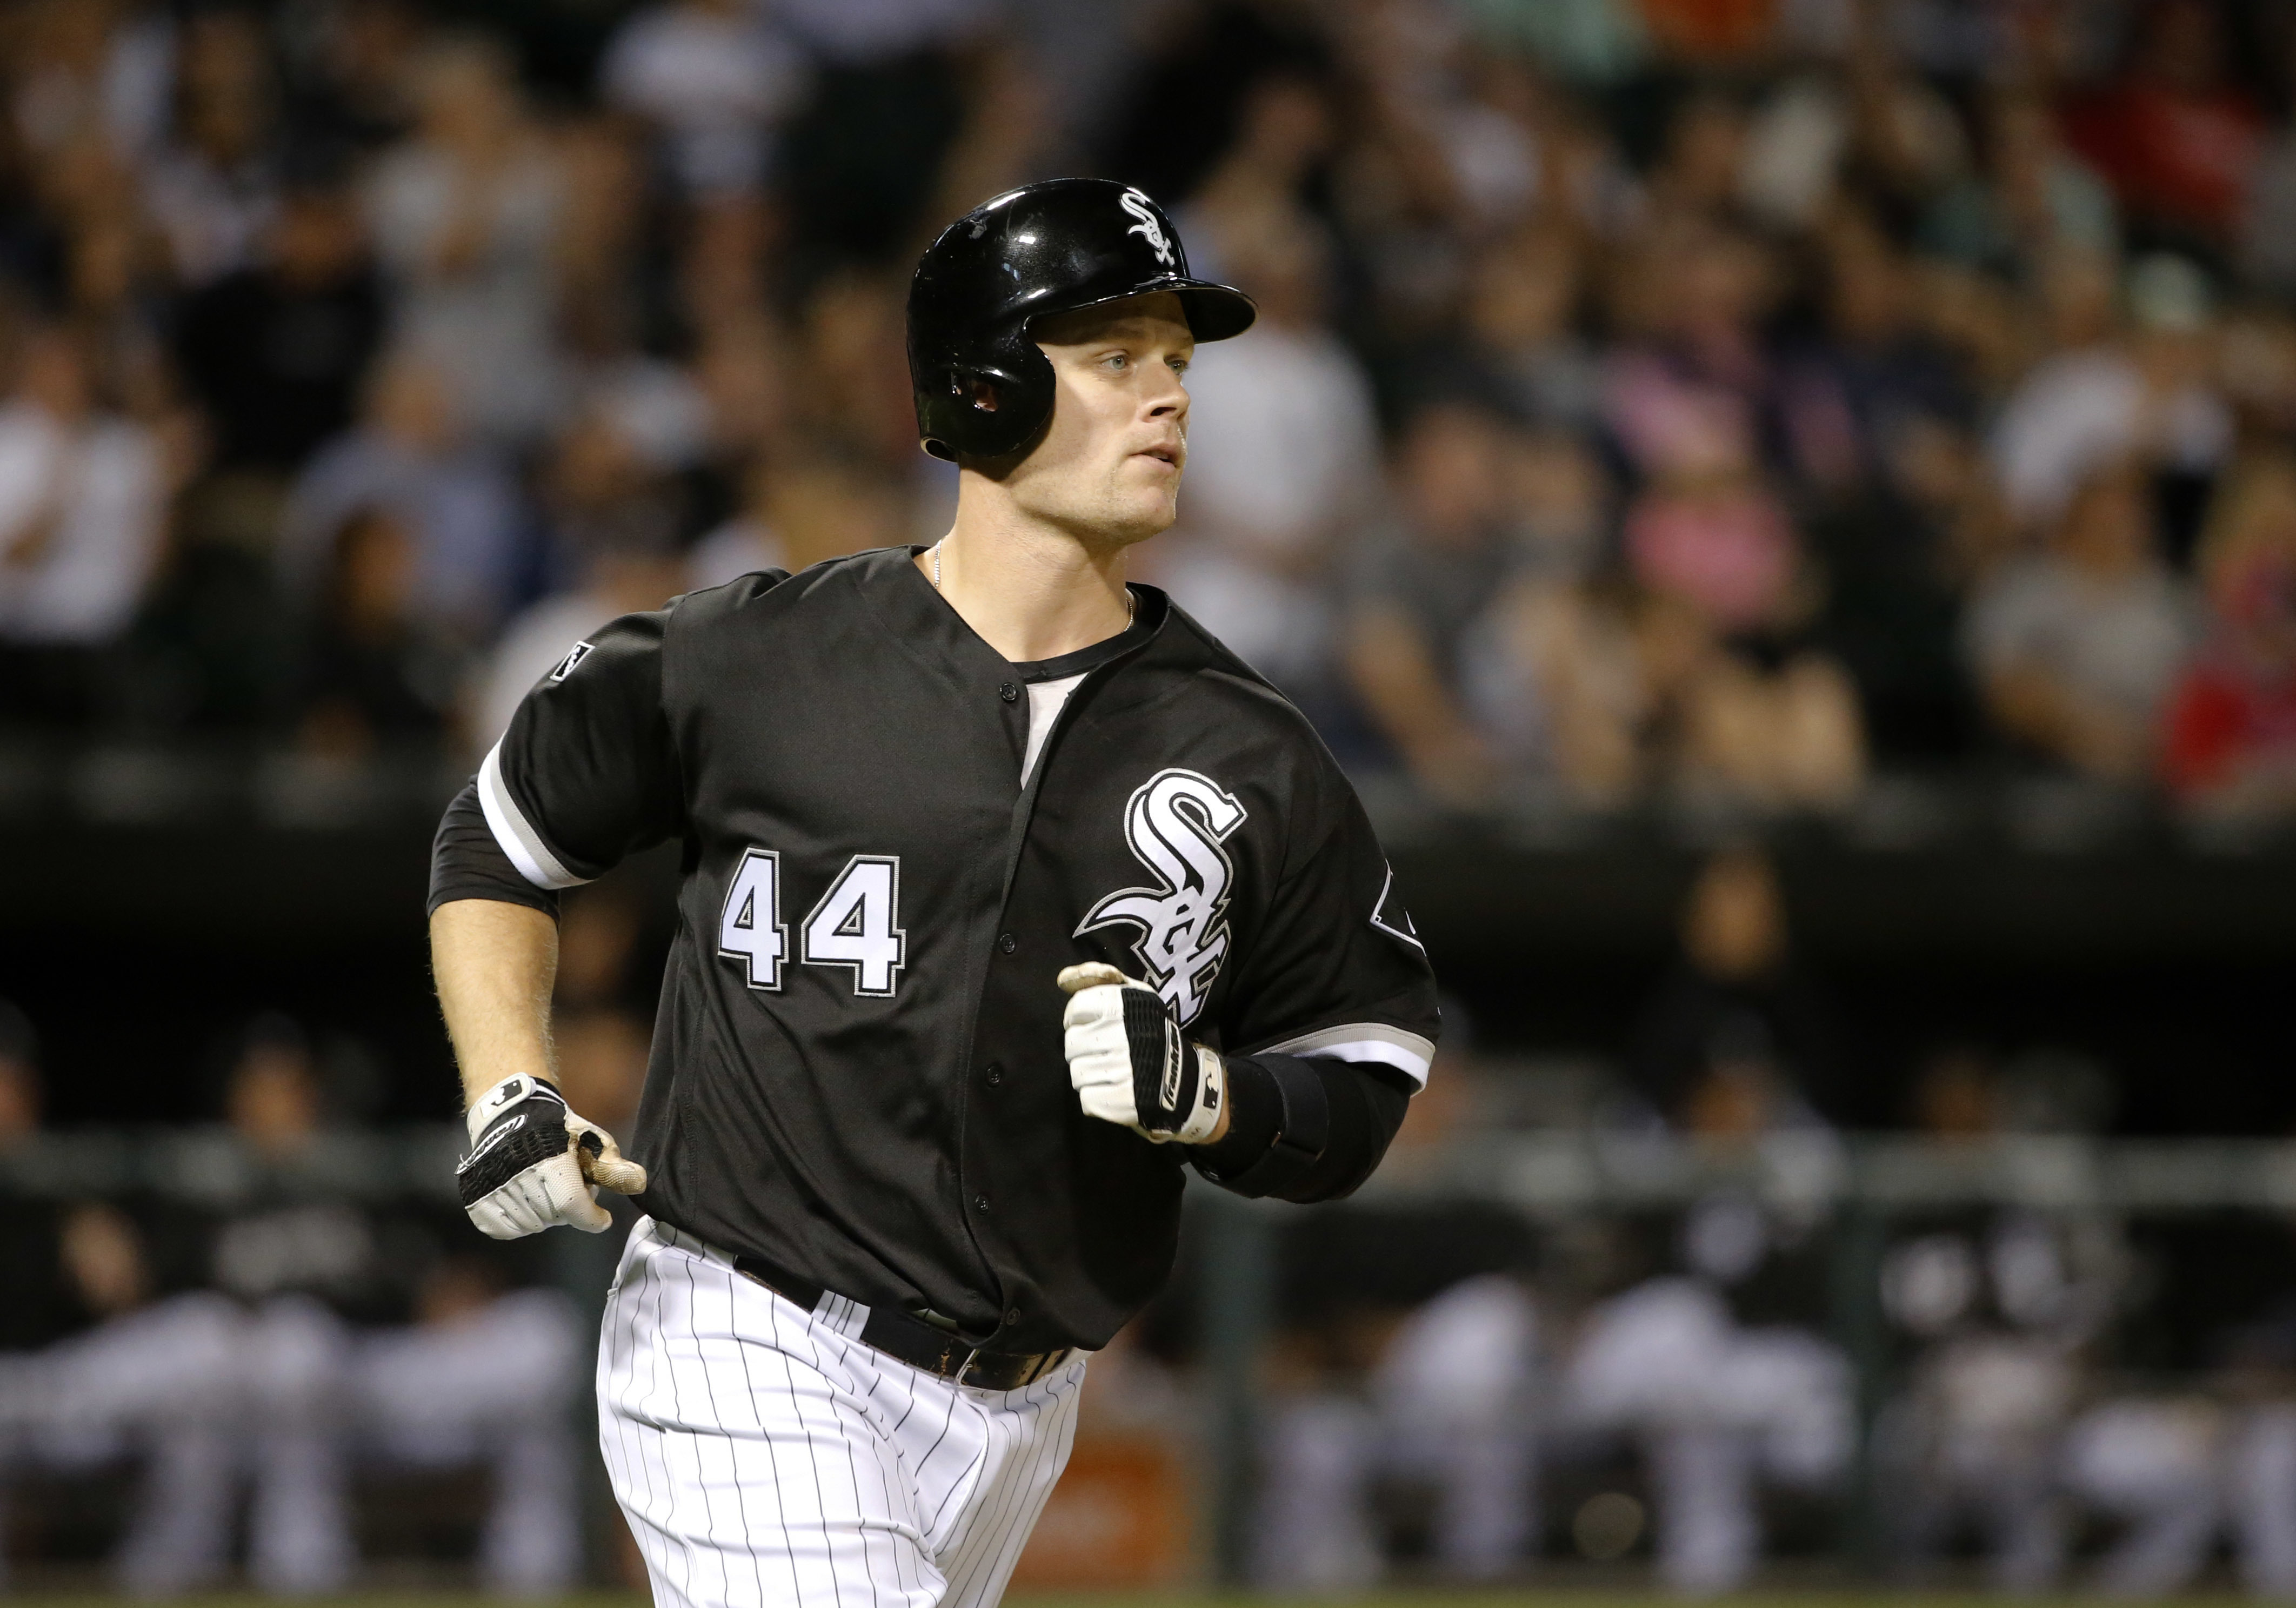 Chicago White Sox's Justin Morneau watches his home run off Philadelphia Phillies starting pitcher Jake Thompson during the fifth inning of an interleague baseball game Tuesday, Aug. 23, 2016, in Chicago. (AP Photo/Charles Rex Arbogast)